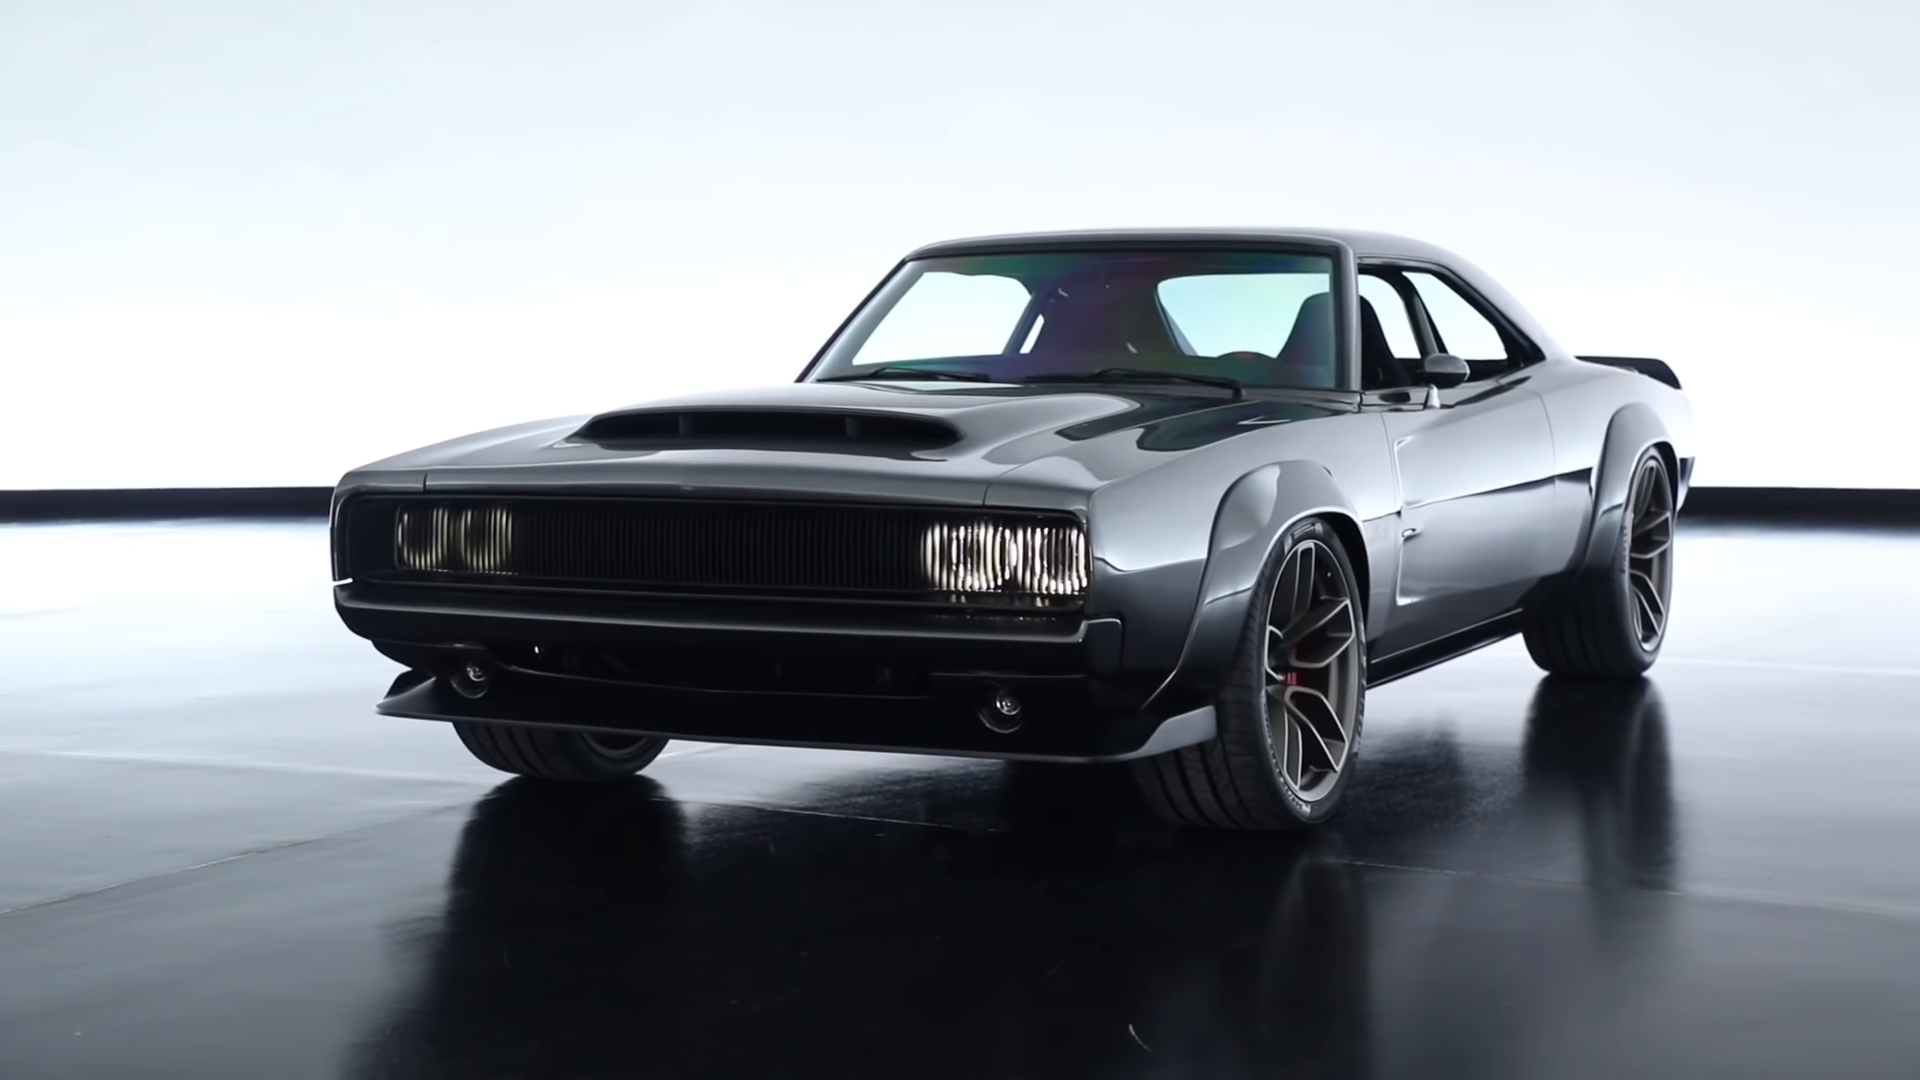 2018 Dodge Super Charger Classic Cars Dodge Muscle Cars